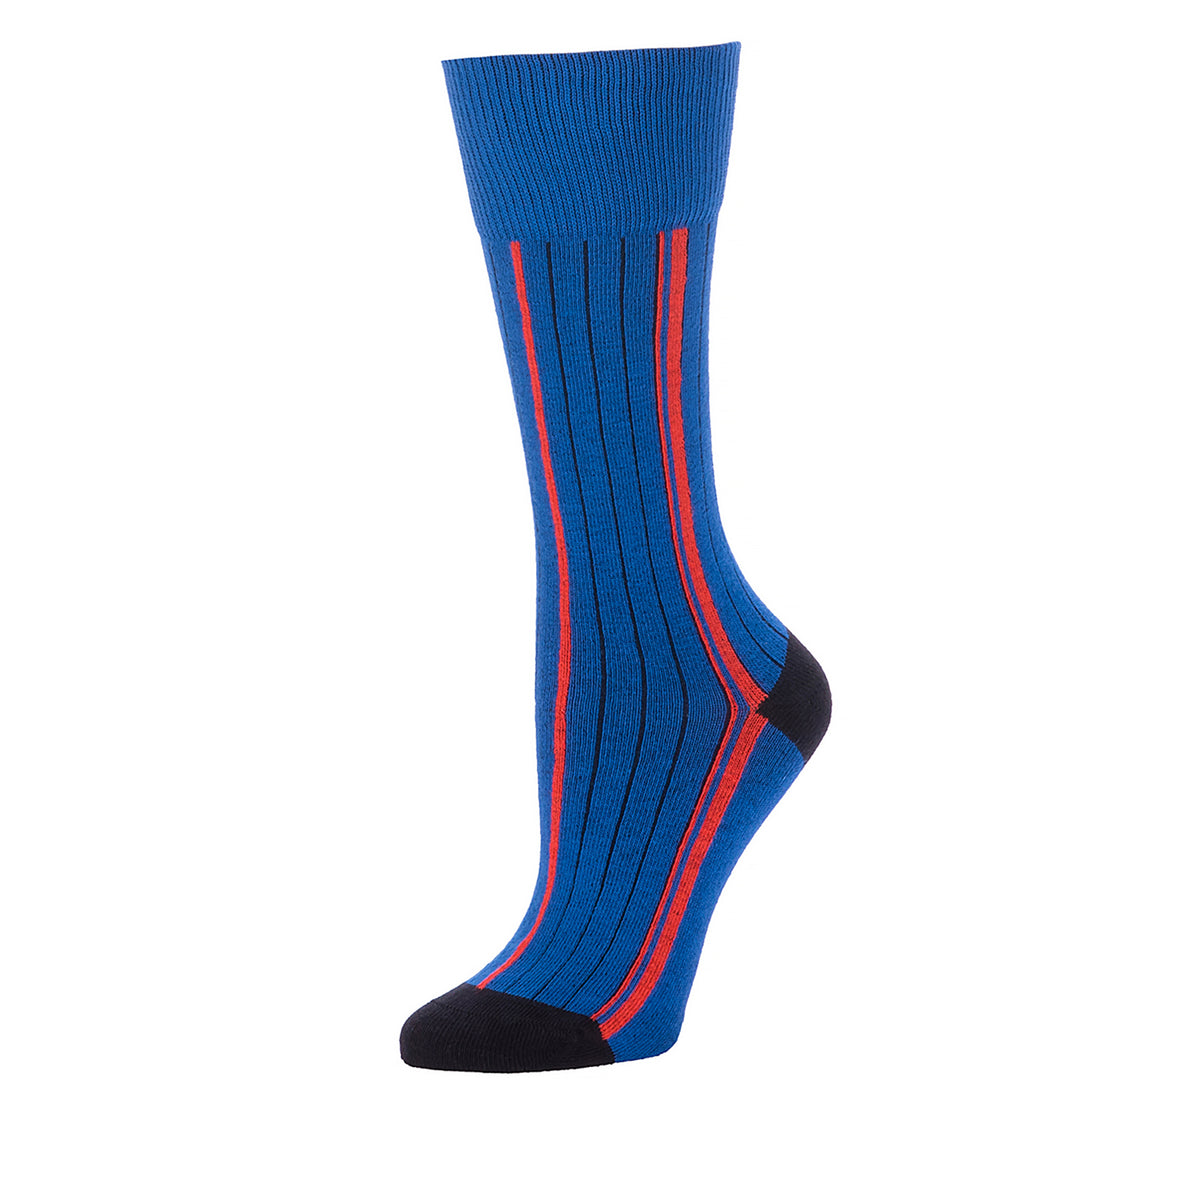 Vertical Side Stripes Mid Calf- Cobalt